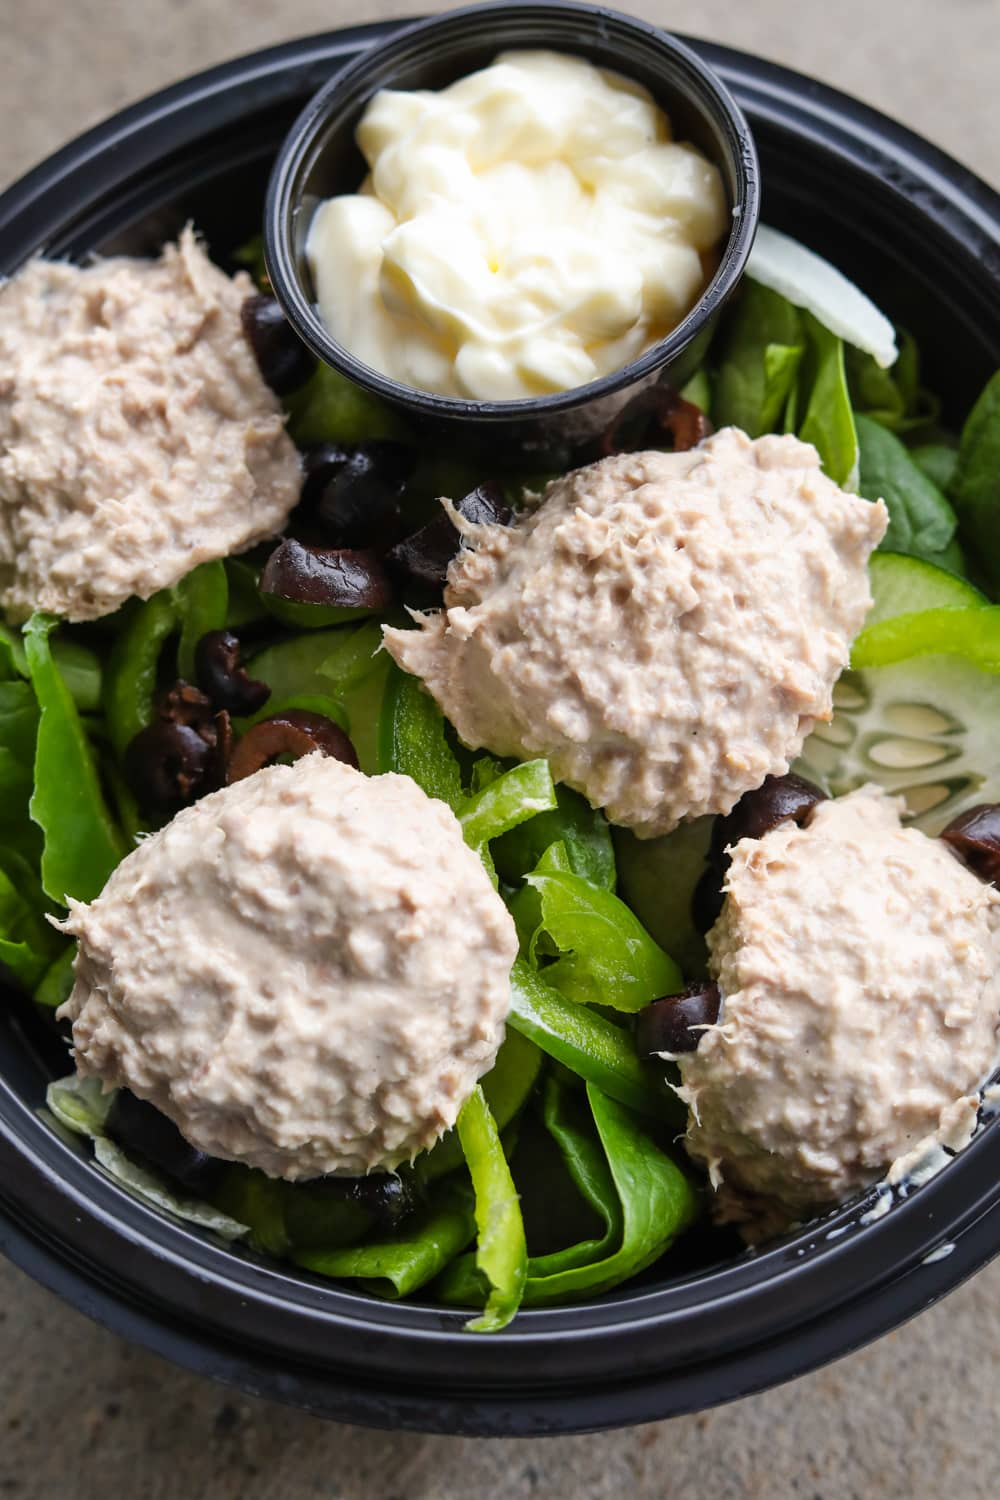 A black bowl filled with green vegetables, four scoops of tunafish that's mixed with mayonnaise, and a cup of mayonnaise.